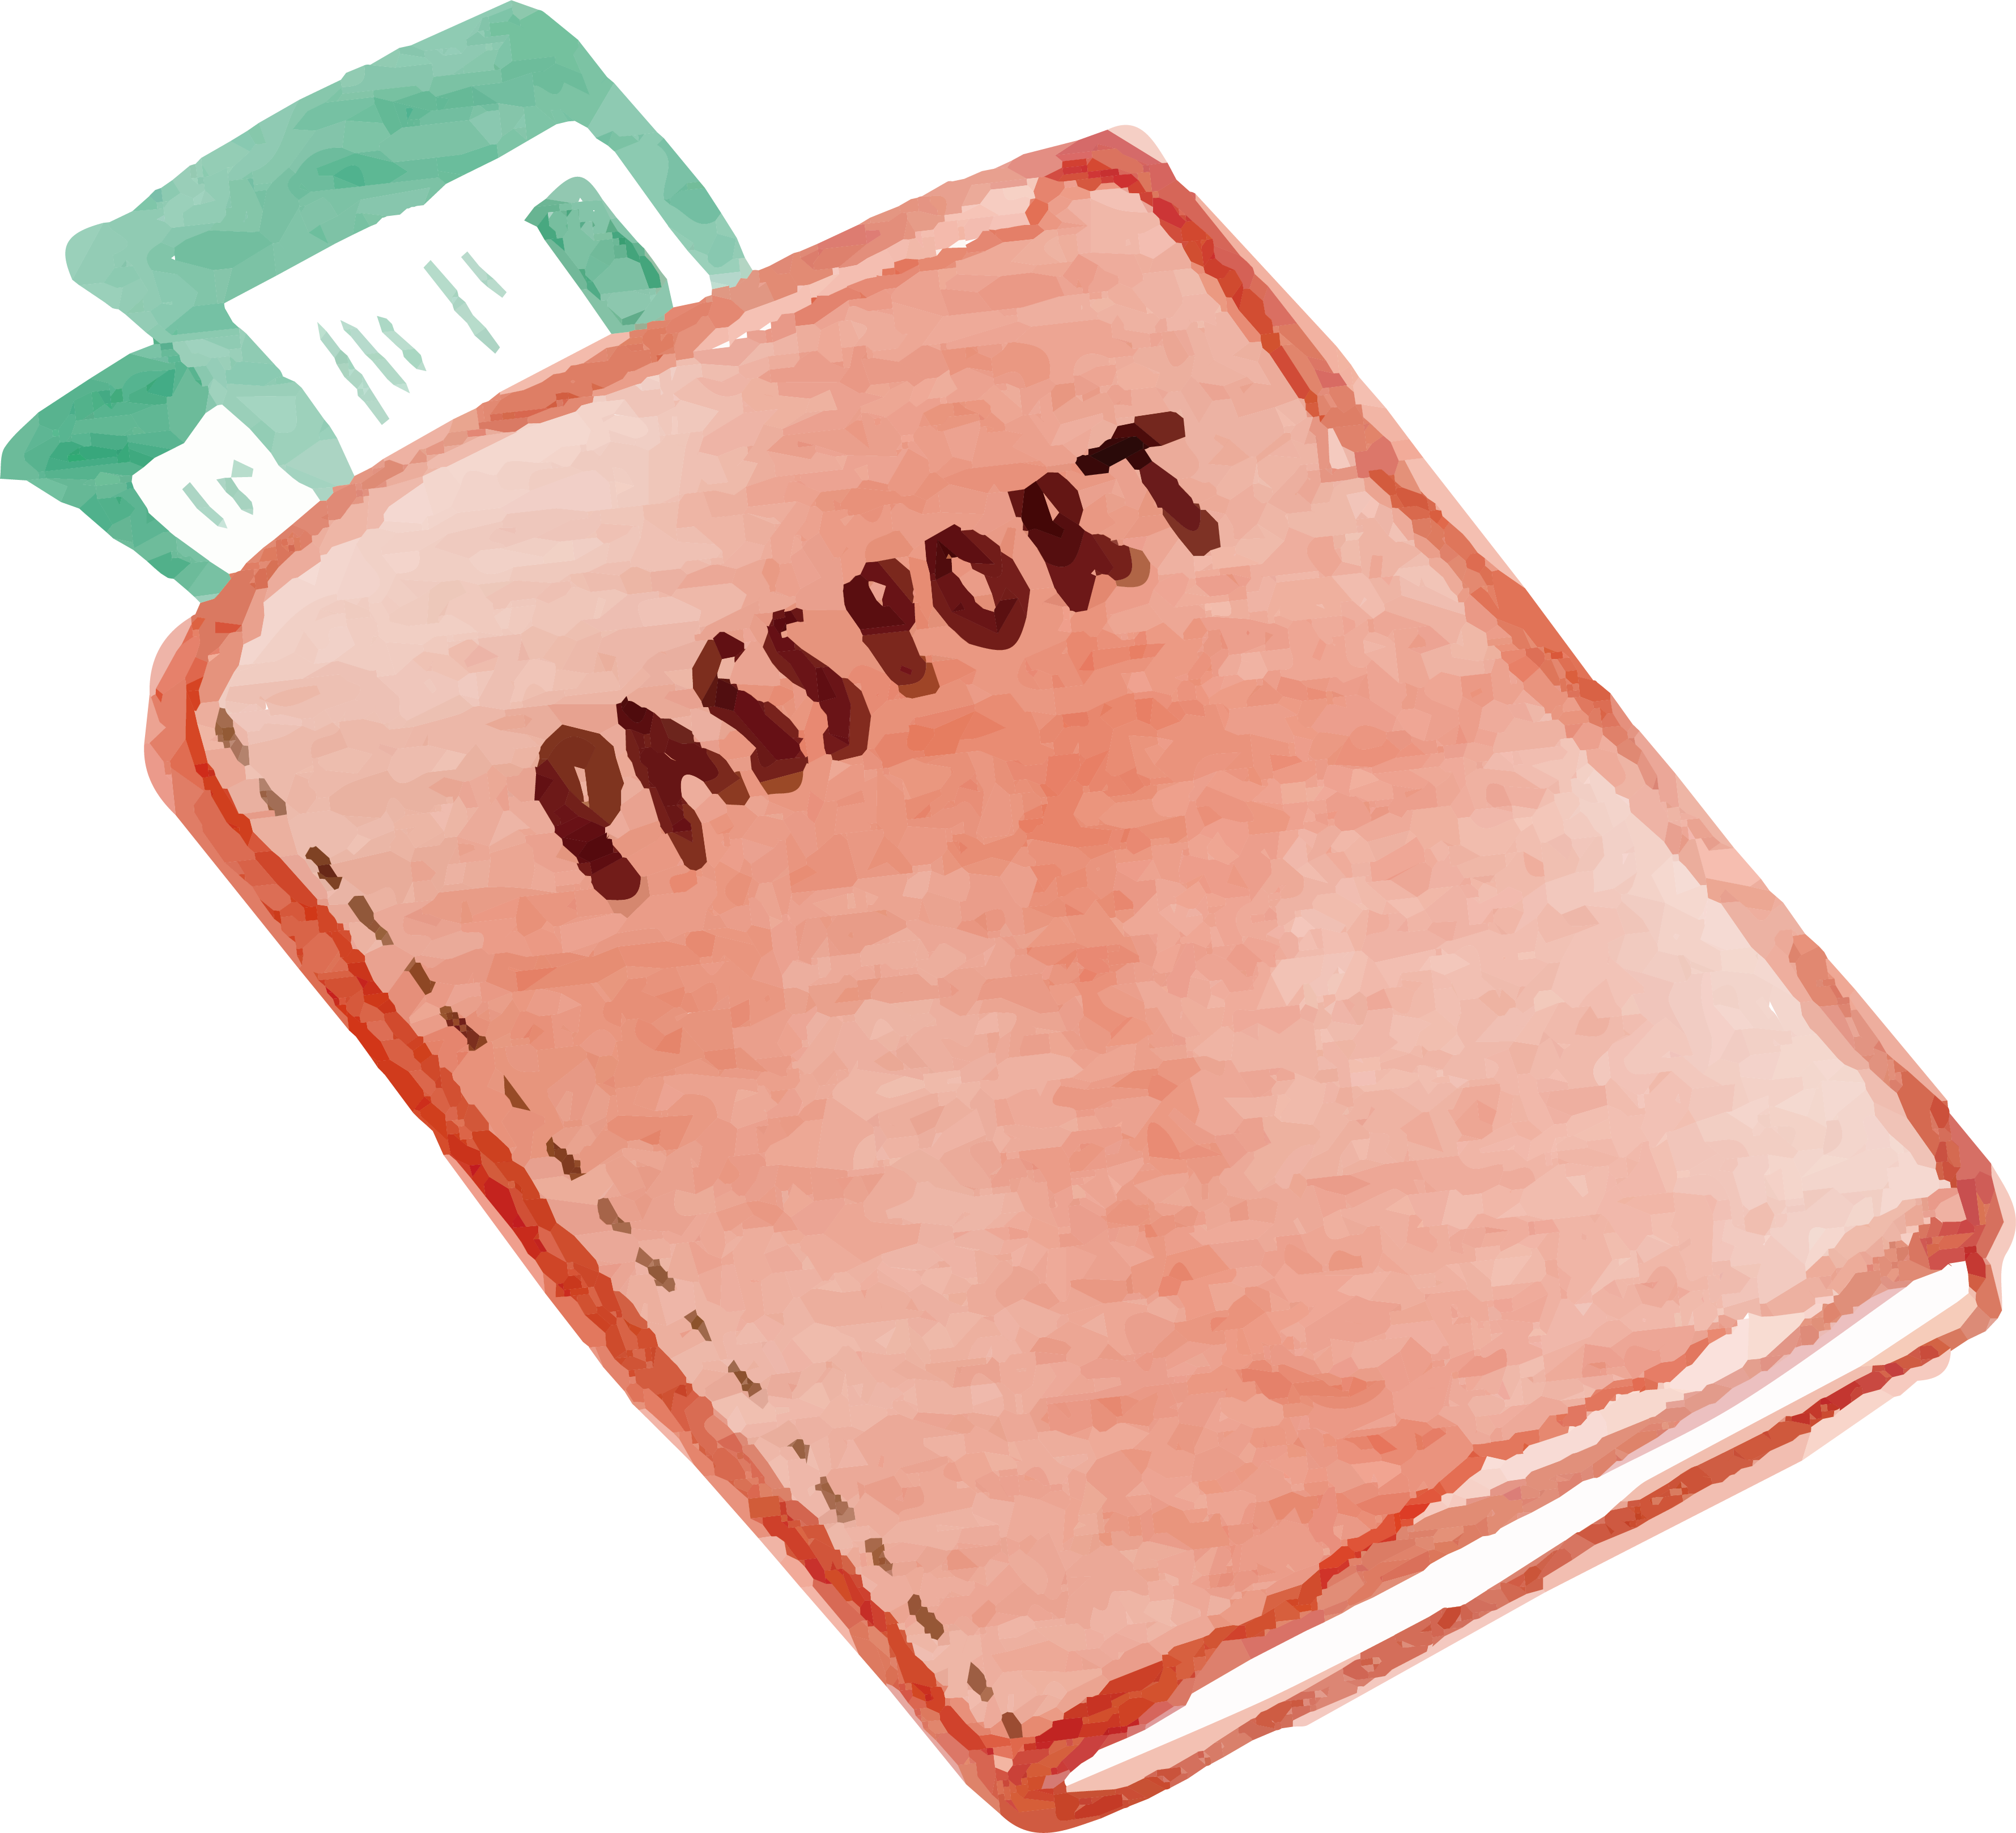 Watercolor painting baggage travel. Passport clipart airline ticket